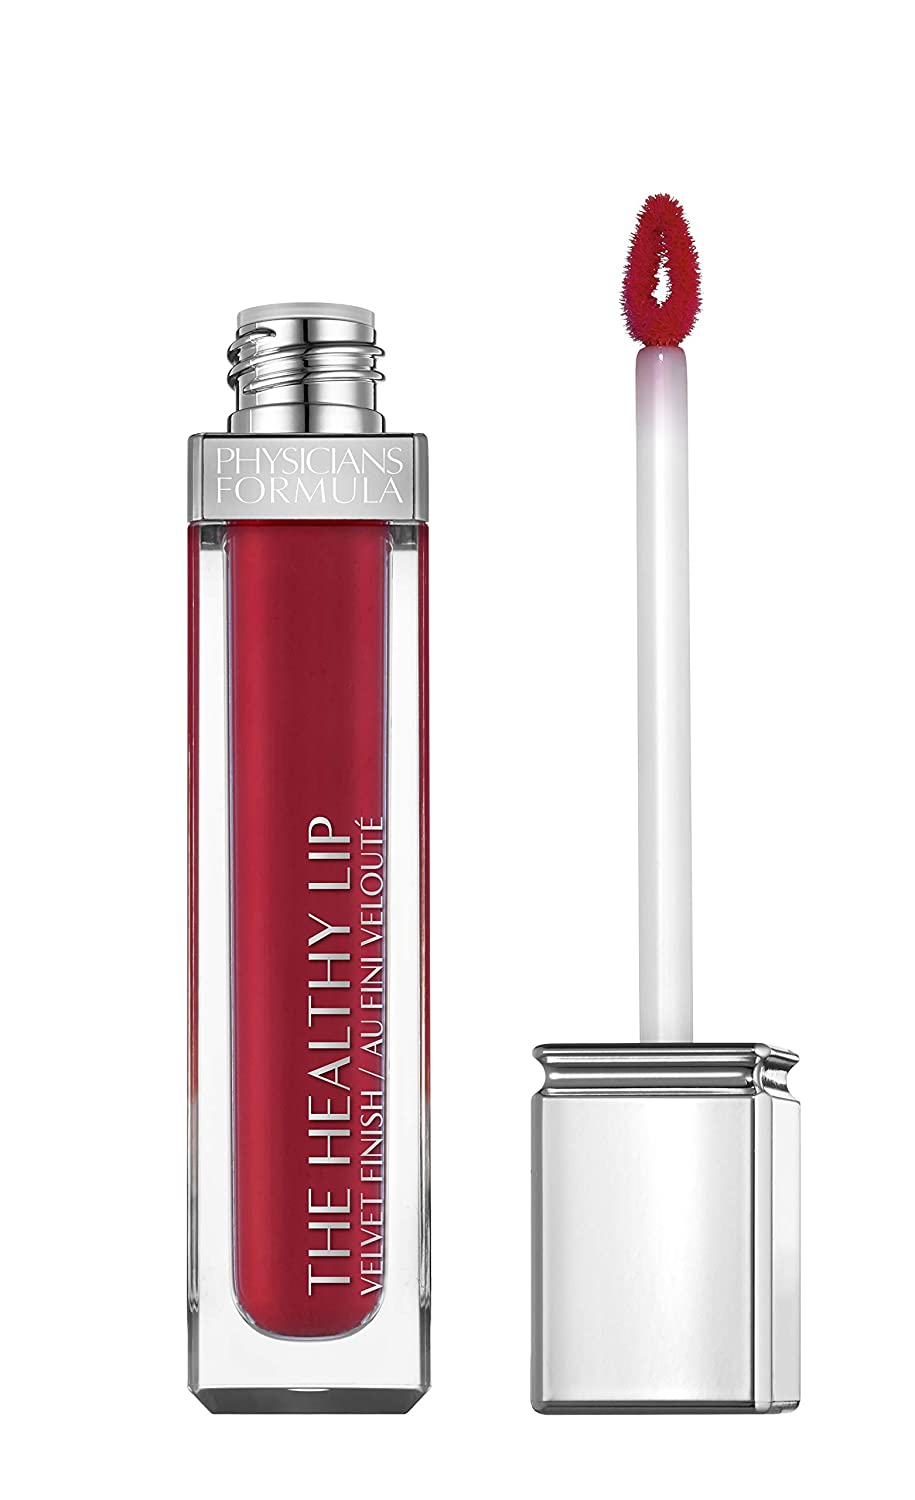 Physicians Formula The Healthy Lip Velvet Liquid Lipstick - Fight Free Red-Icals 0.24 Fl oz / 7 ml (Pack of 1)